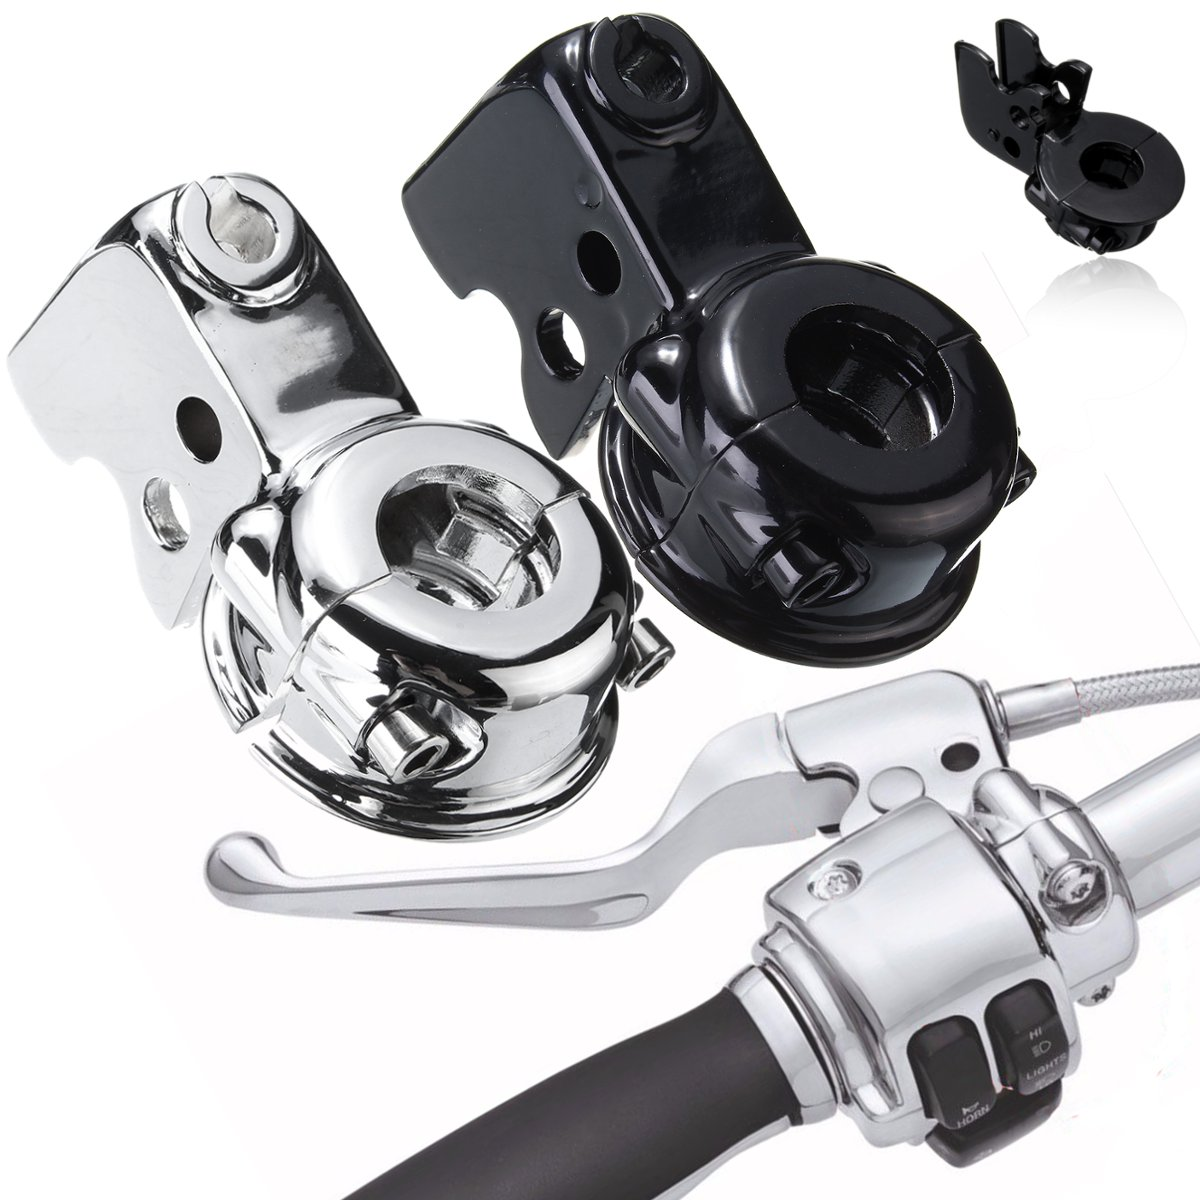 Motorcycle Clutch Lever Mount Bracket Perch For Harley Touring Glide Softail Dyna Sportster 883 Chrome Black triclicks motorcycle saddle bag support bars mount brackets saddlebag bracket support for harley sportster 883 iron xl883n dyna